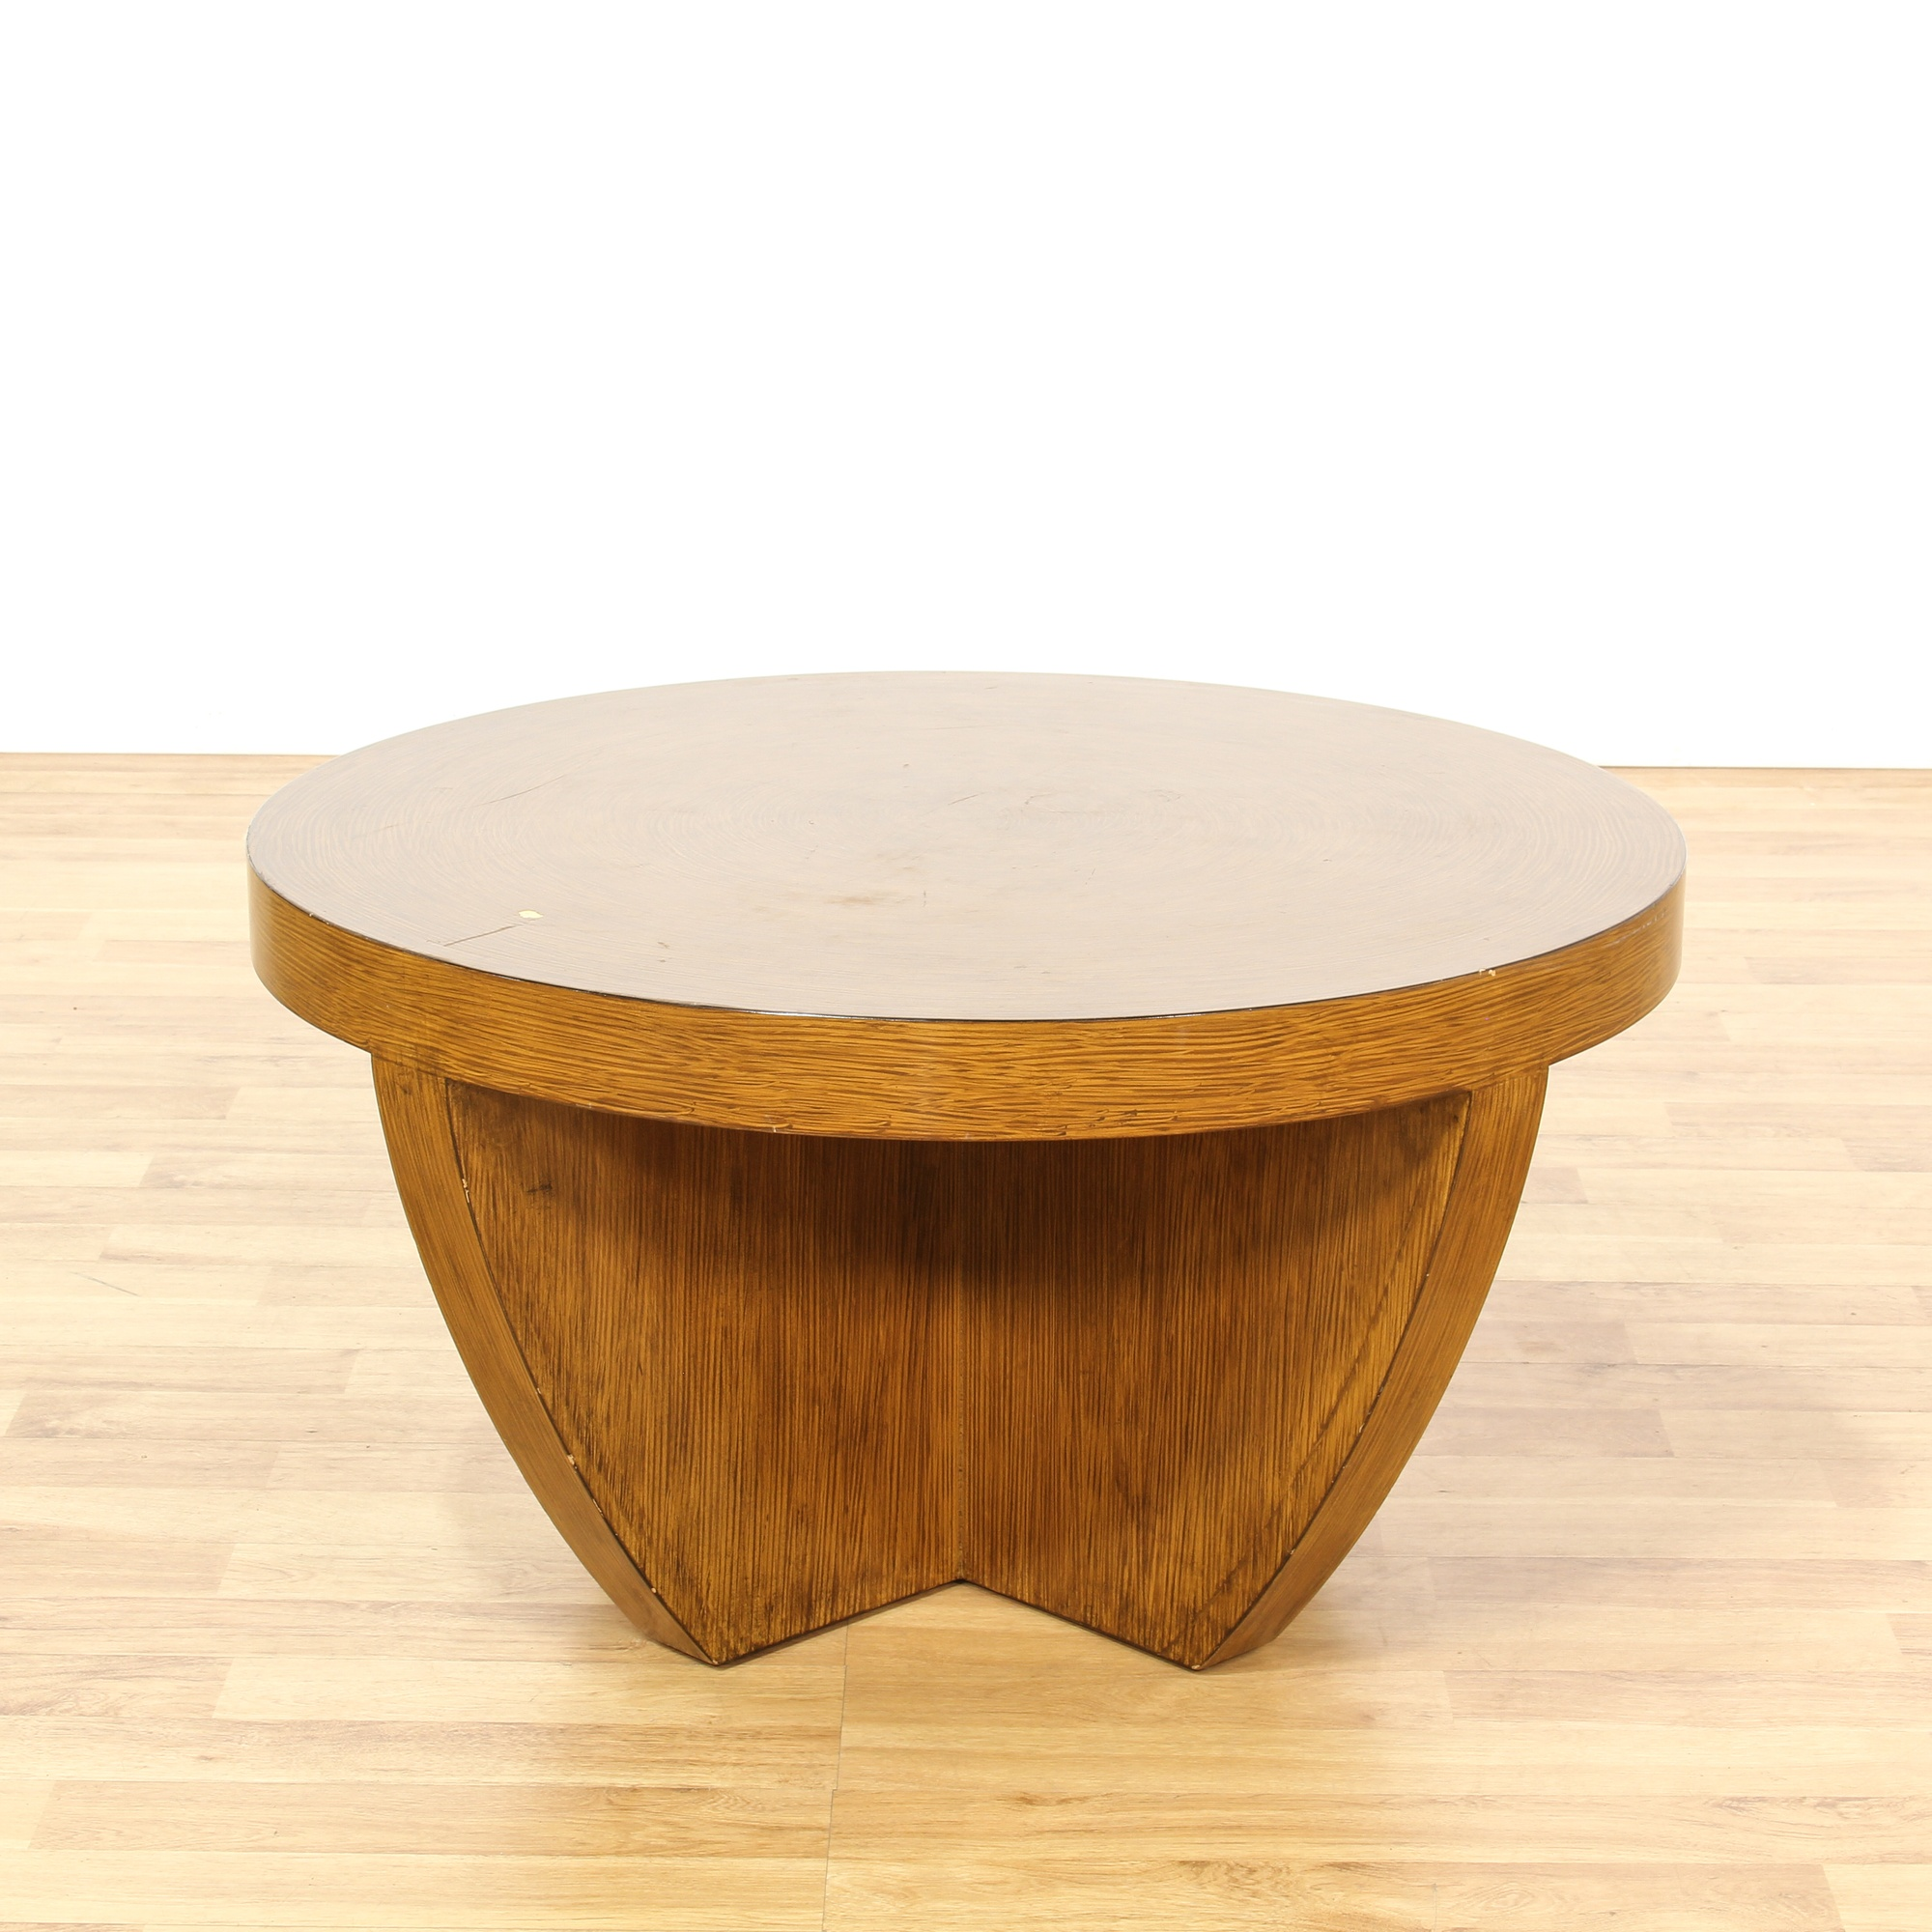 Modern Round Wooden Coffee Table 110: Contemporary Round Thick Wood Coffee Table